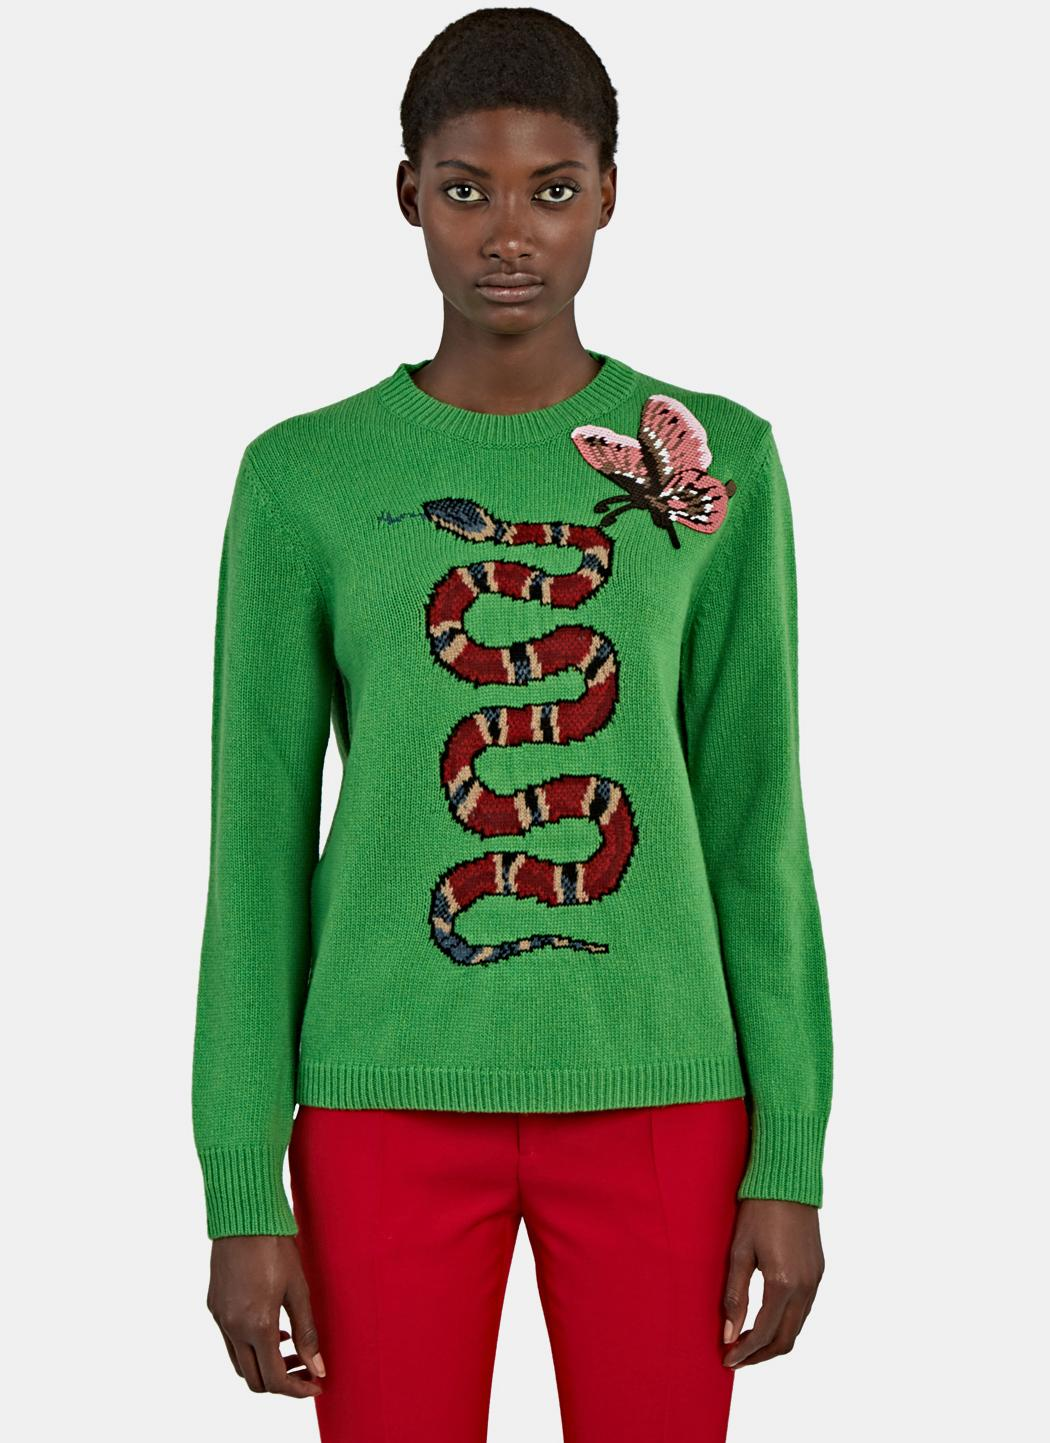 Lyst - Gucci Women s Snake Intarsia Knit Crew Neck Sweater In Green 98ff04745